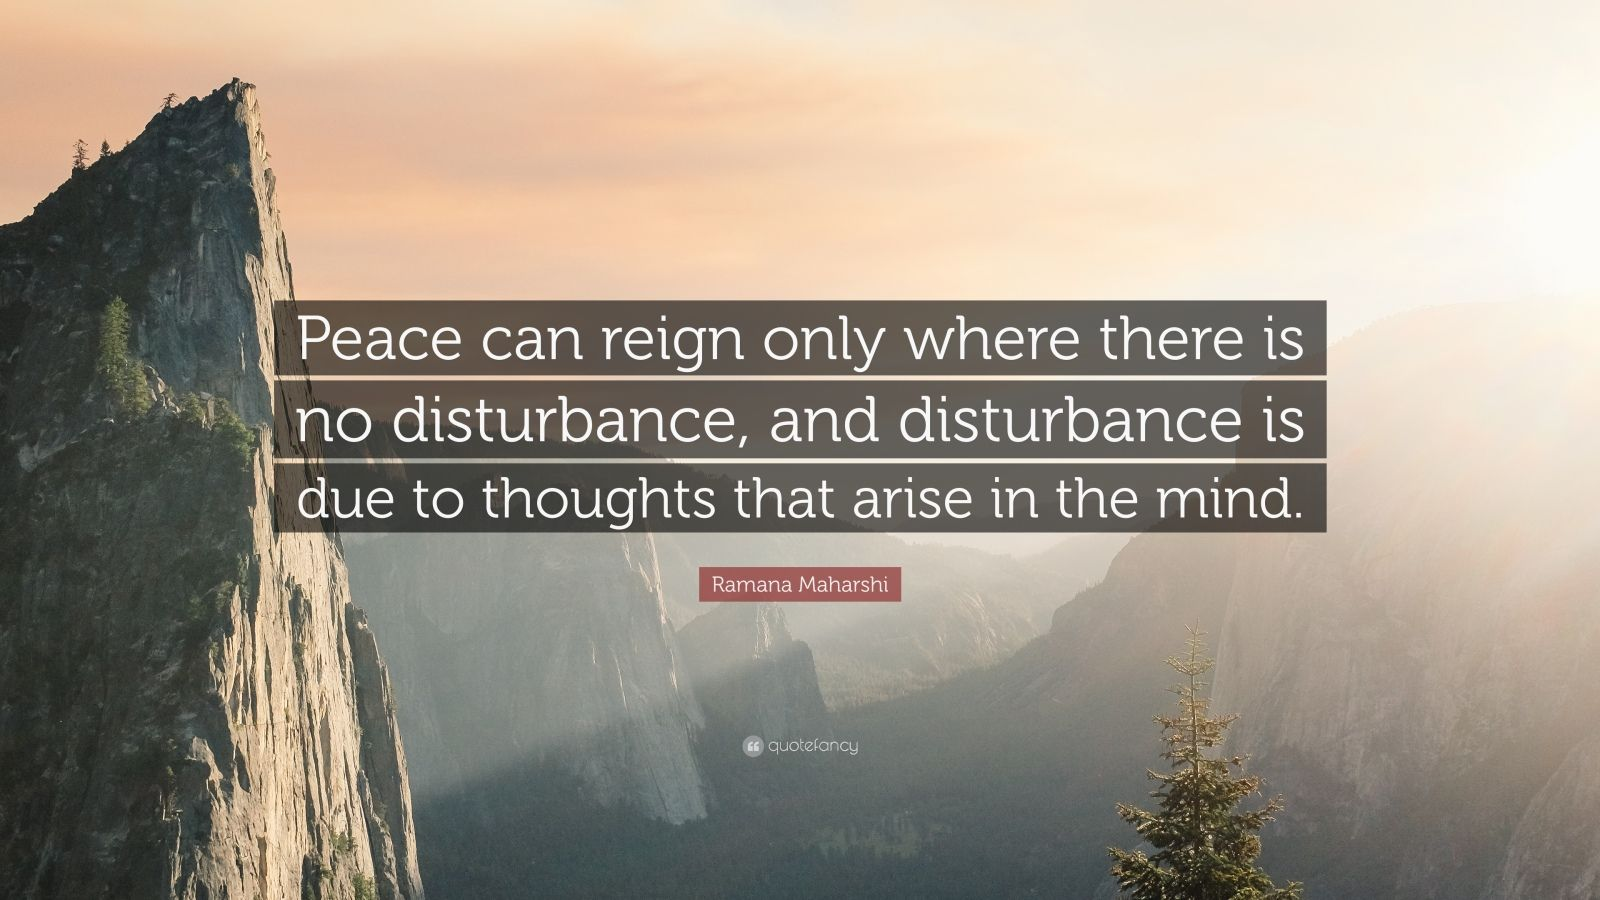 """Ramana Maharshi Quote: """"Peace can reign only where there is no disturbance, and disturbance is due to thoughts that arise in the mind."""""""